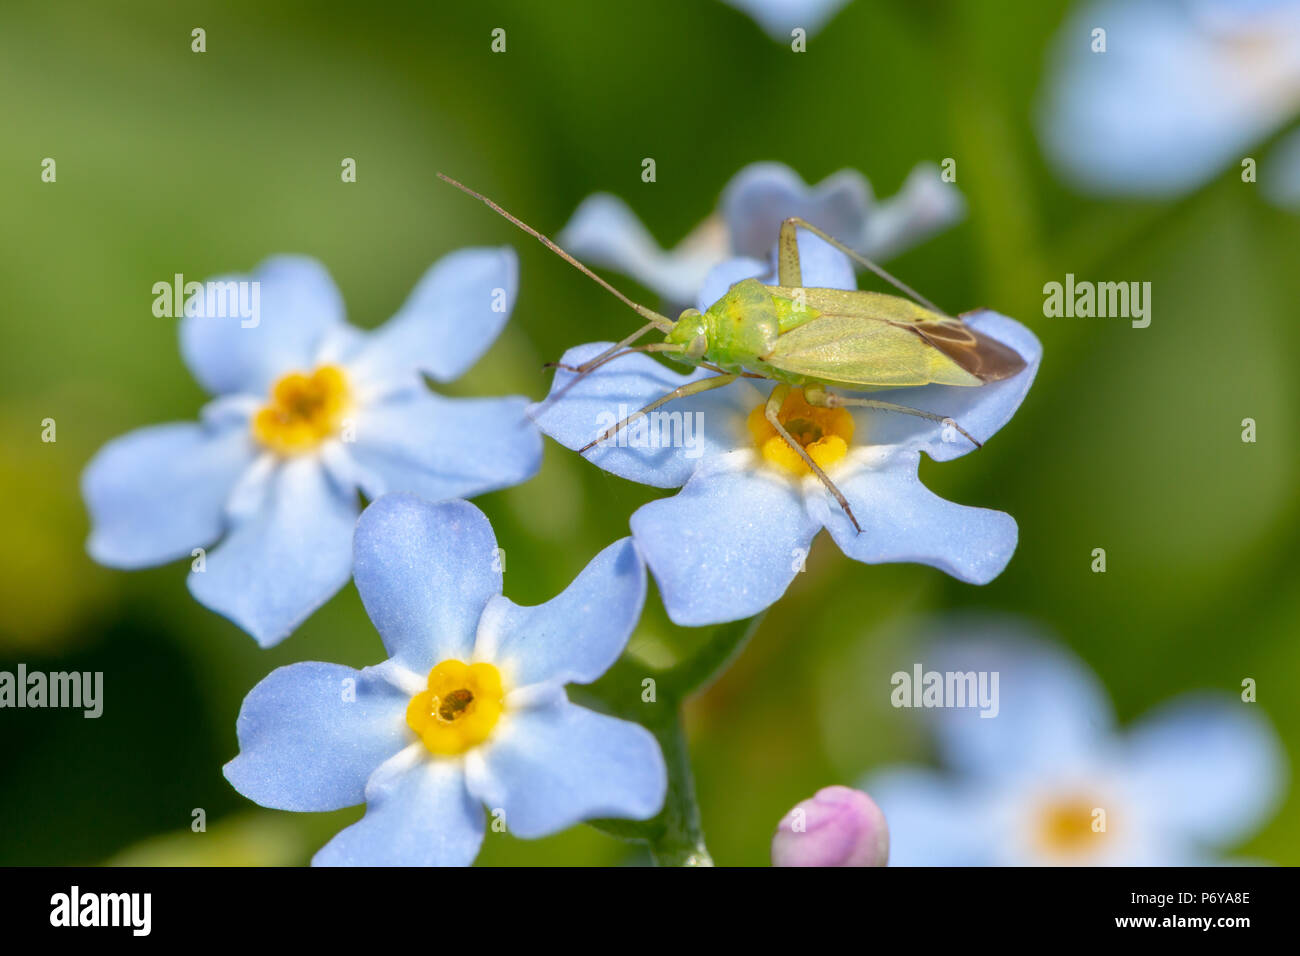 Close-up photo of blue Forget-me-nots with a common green Capsid standing on one flower off-centre. Taken in Poole, England. - Stock Image